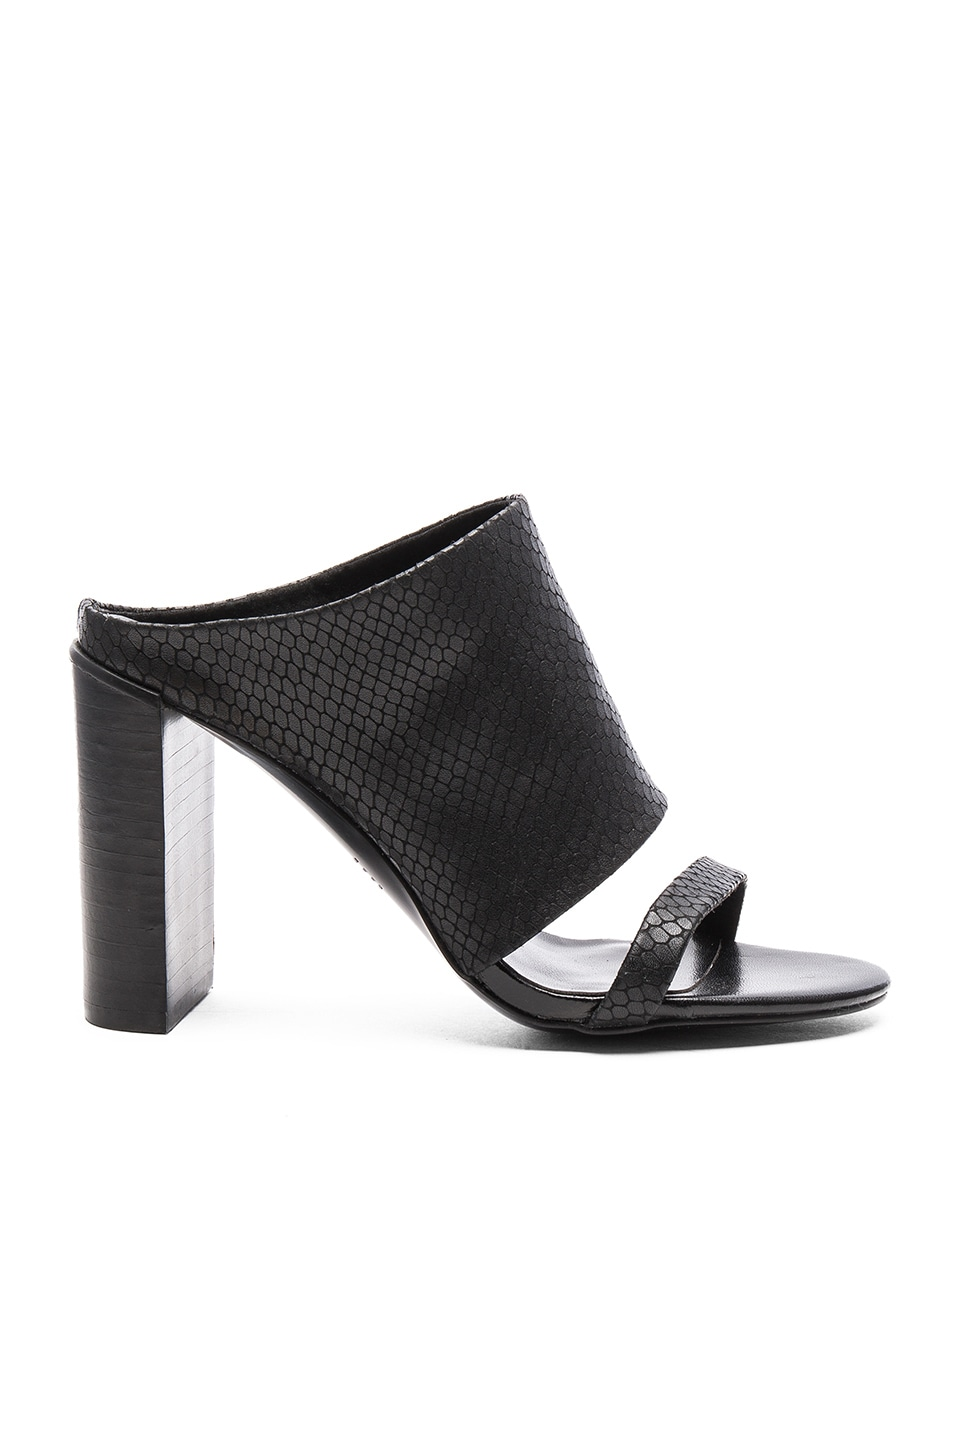 Urge Erica Heel in Black Snake